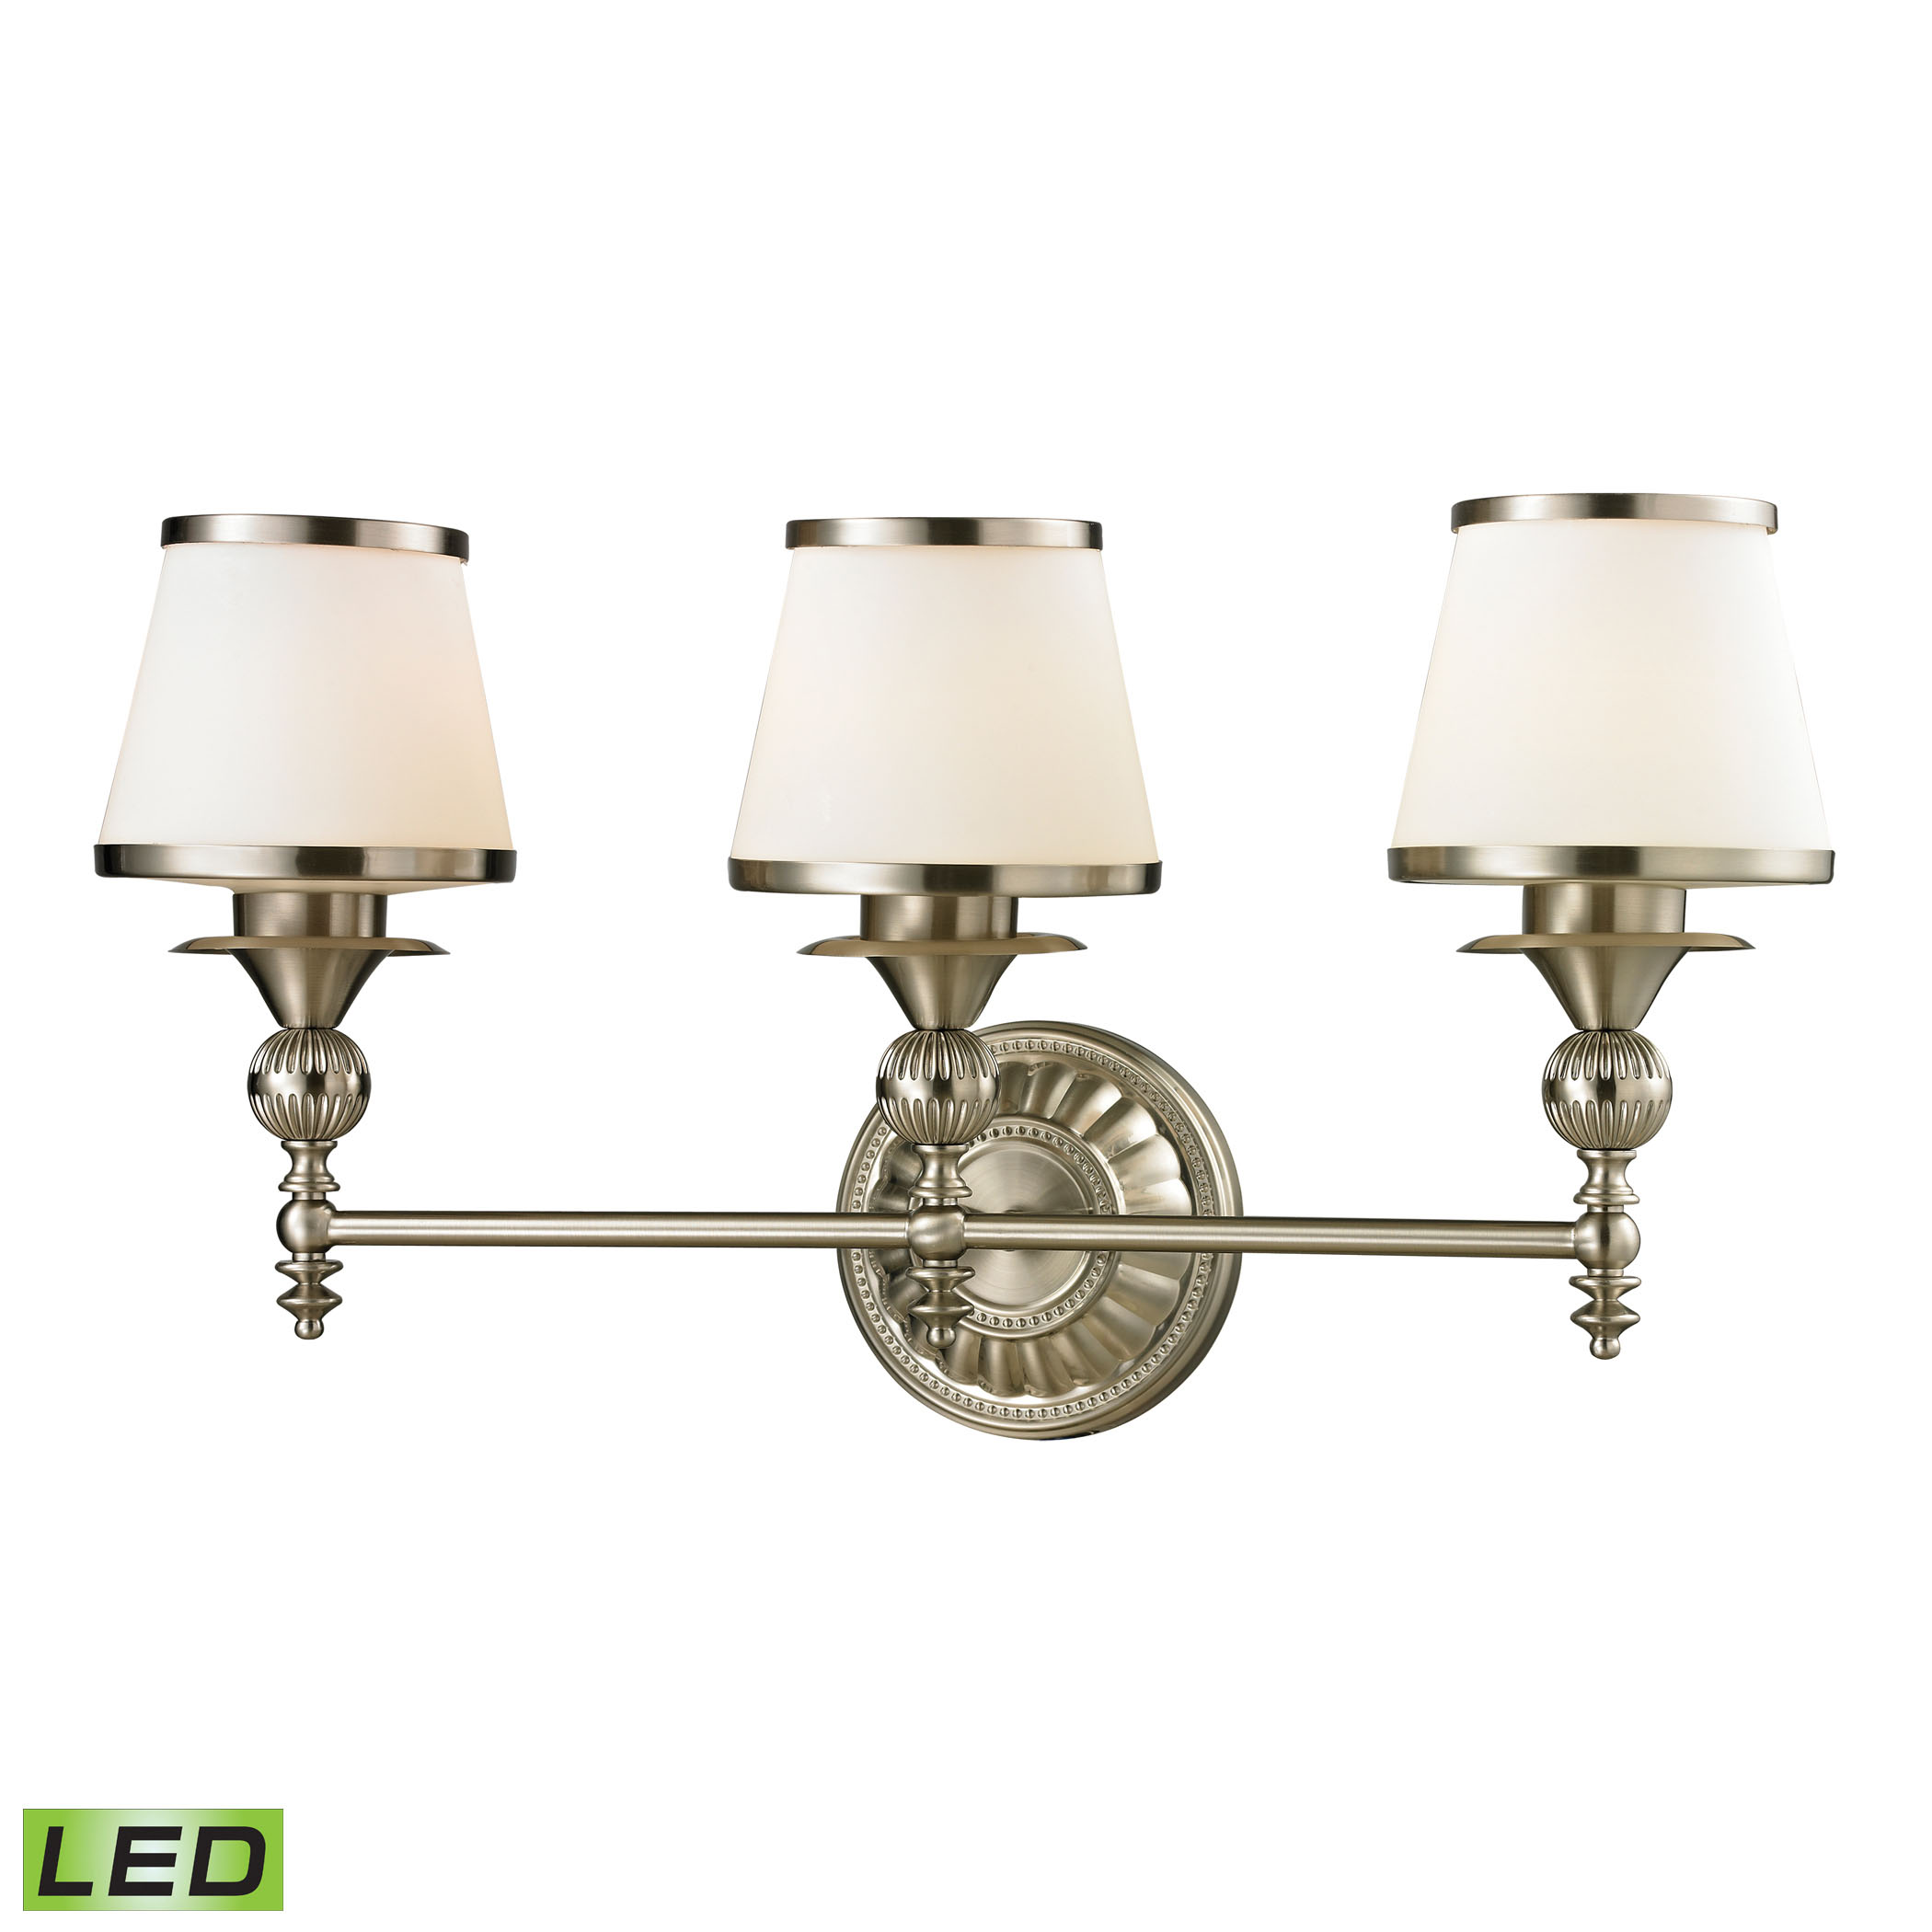 Smithfield Collection 3 Light Bath in Brushed Nickel - LED, 800 Lumens (2400 Lumens Total) with Full